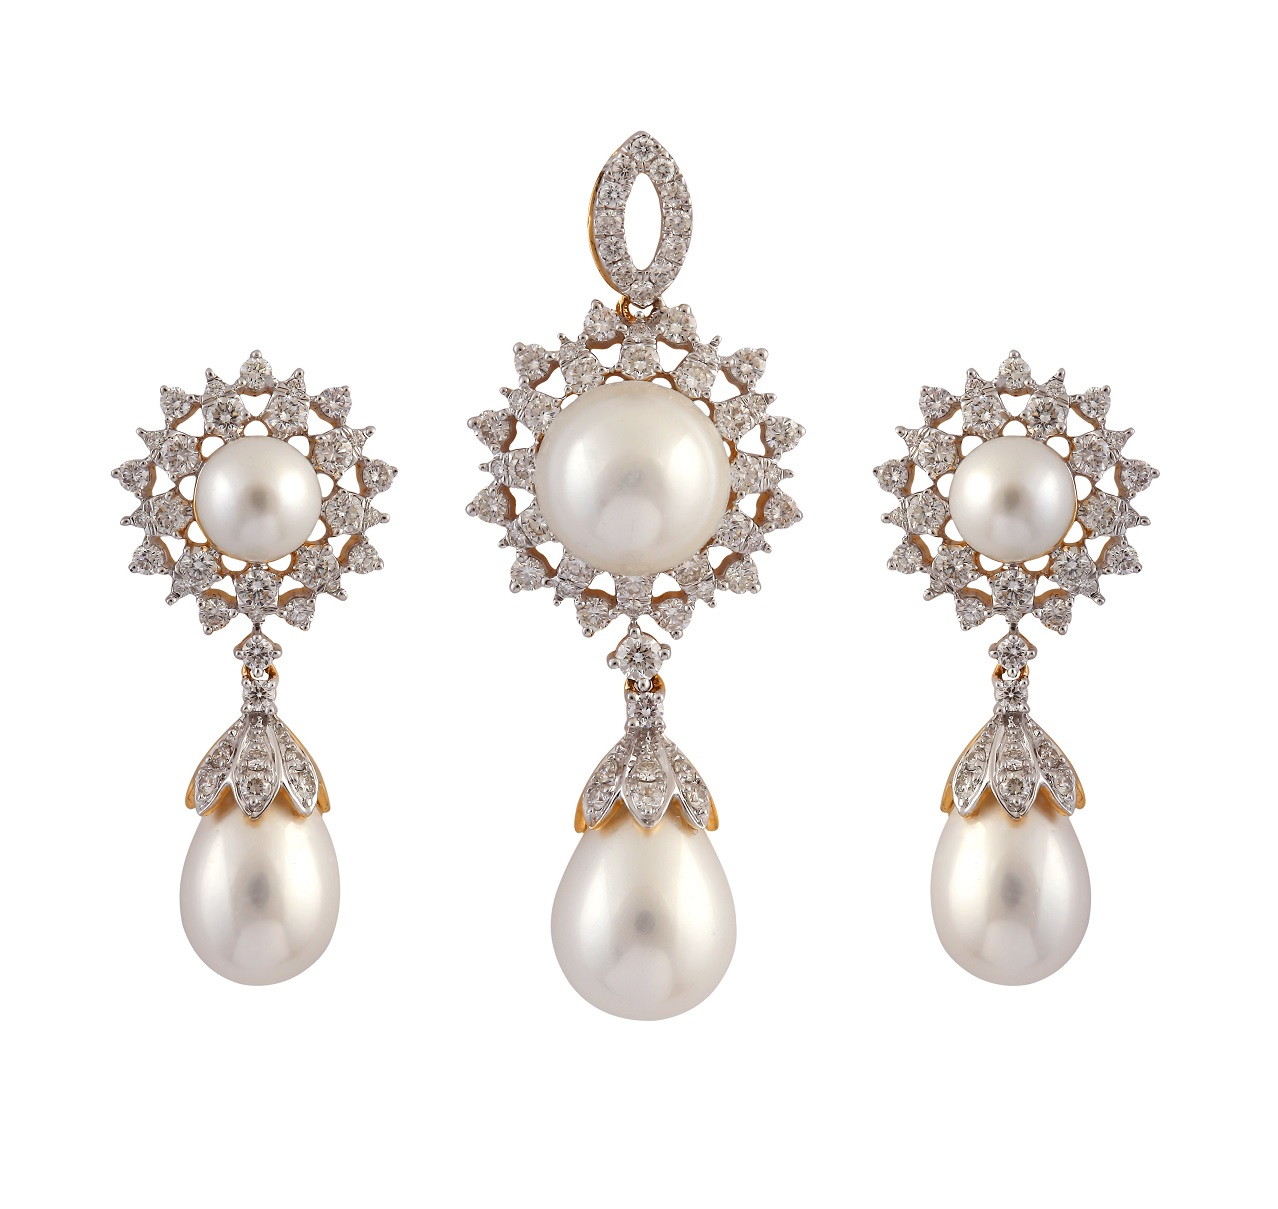 pearl product products diamond pendant and adriana ring jewellery image s earrings set